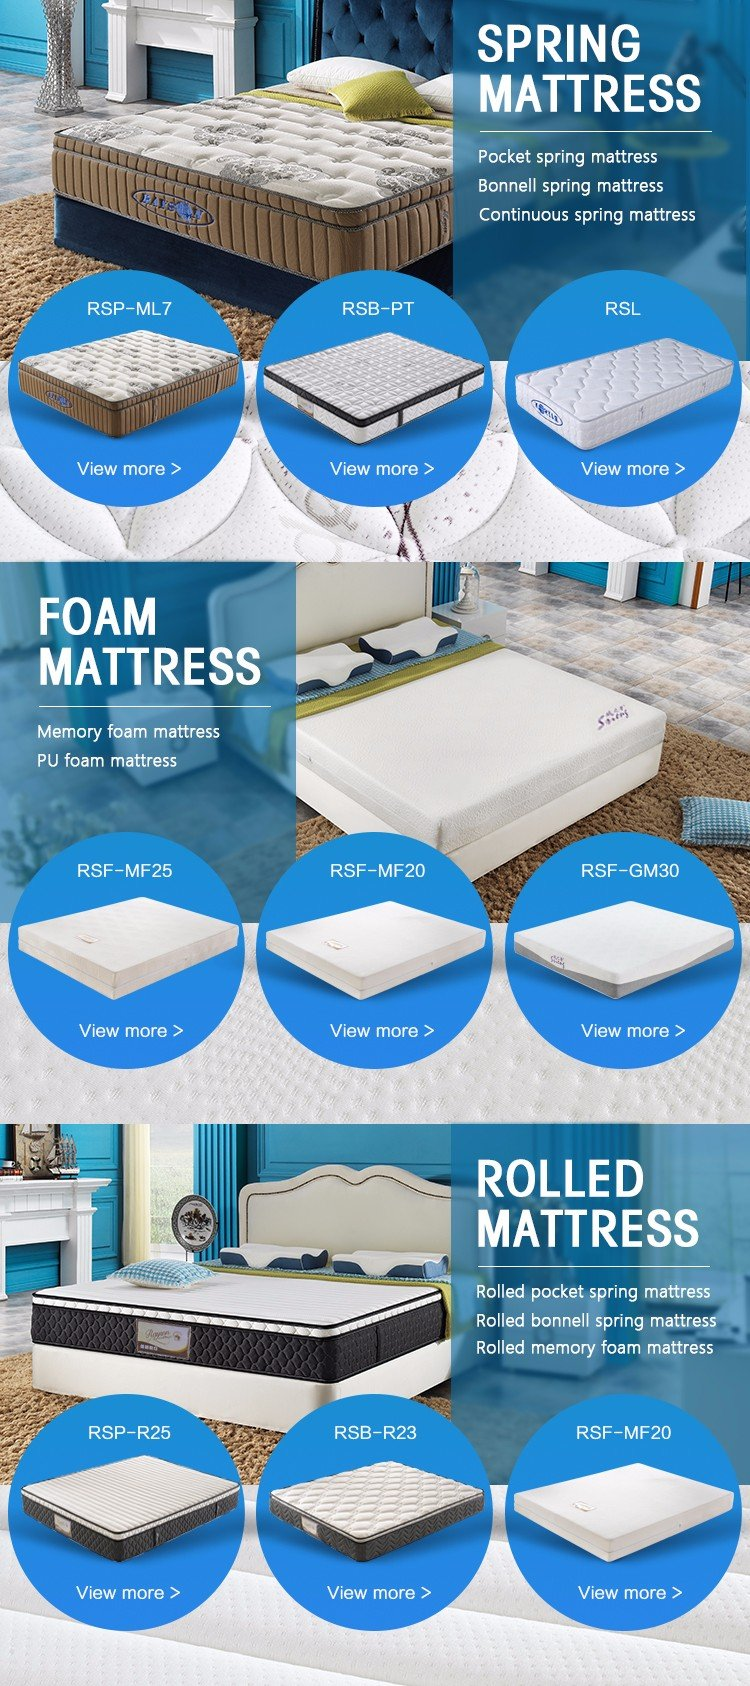 Rayson Mattress Wholesale 2000 pocket sprung memory foam mattress Suppliers-9